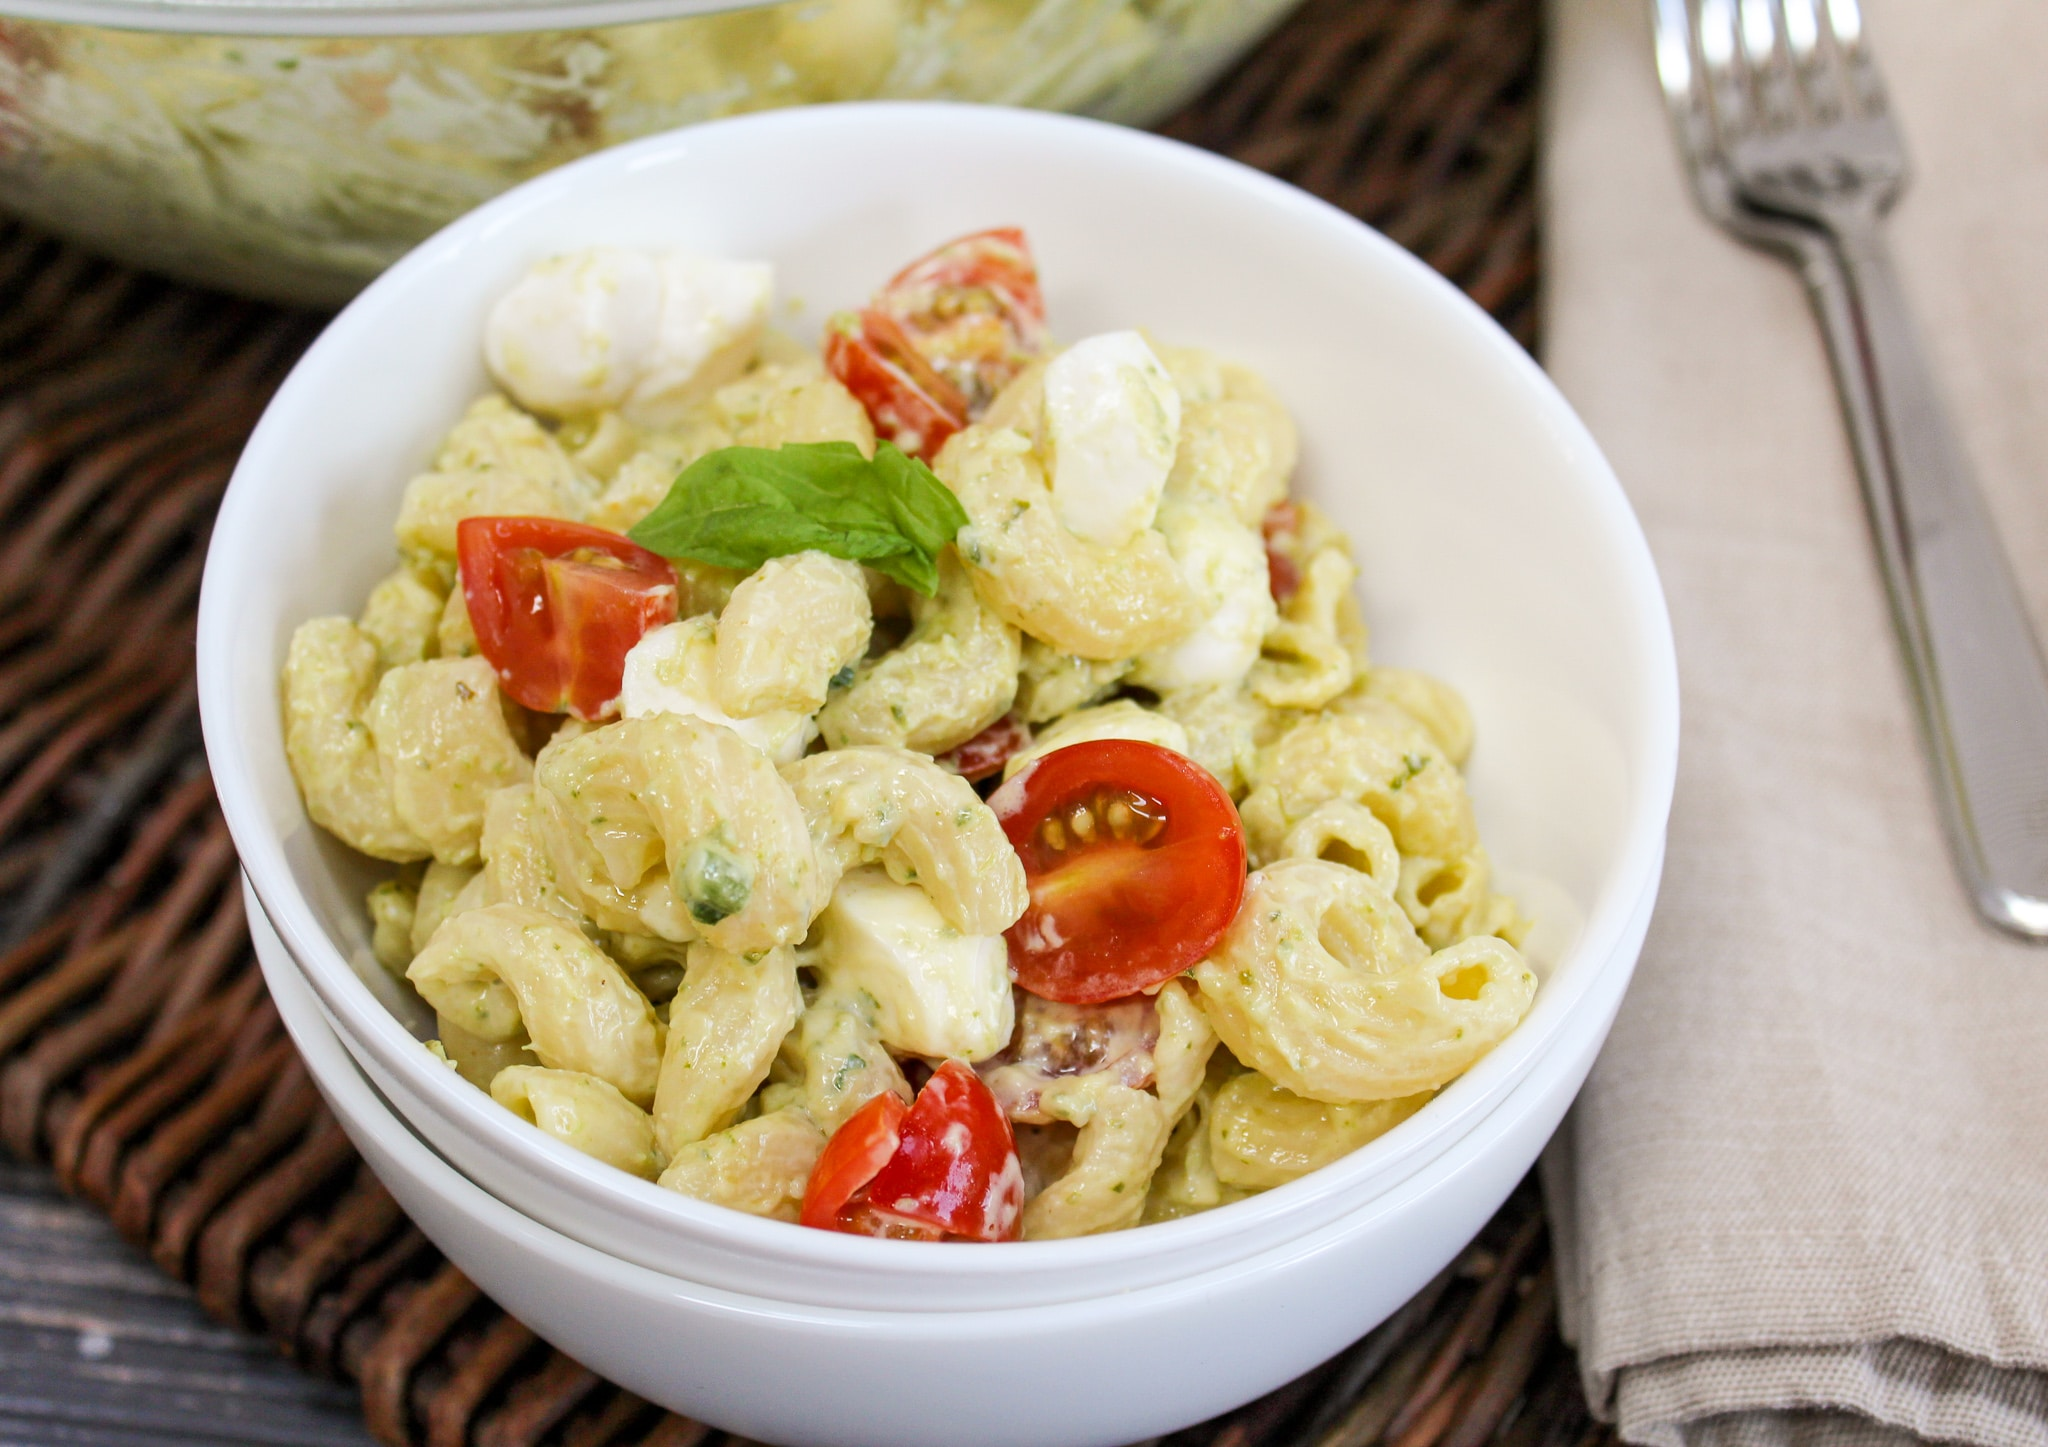 pasta salad in white individual bowls